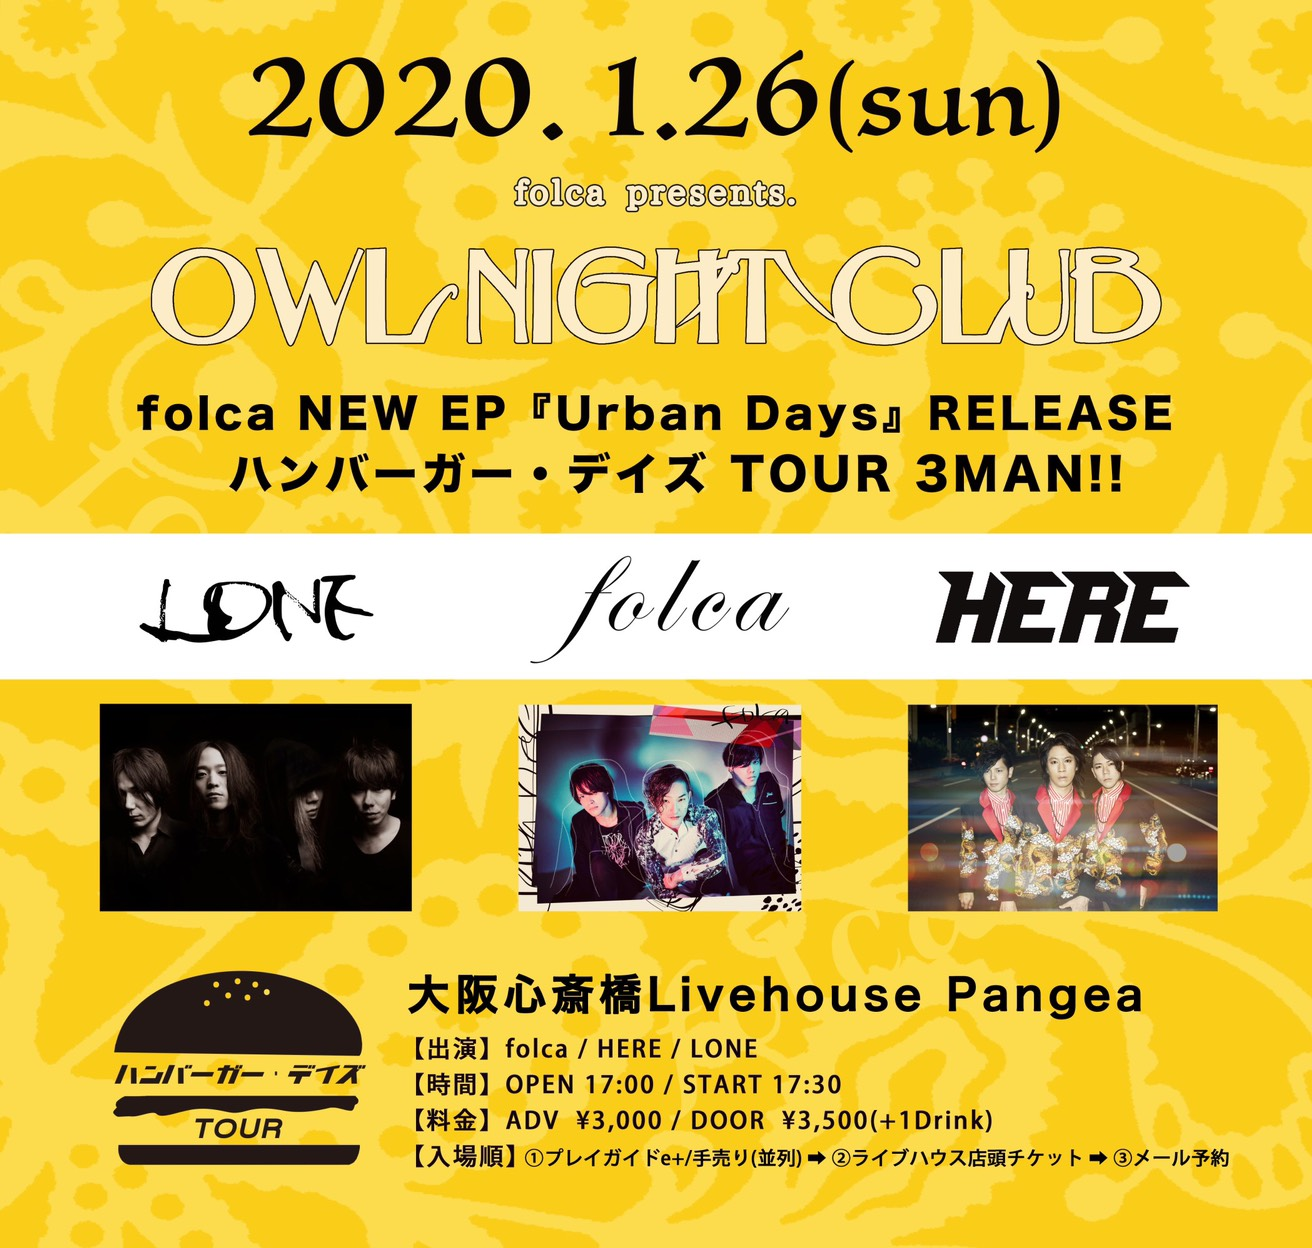 『Owl Night Club』folca pre.